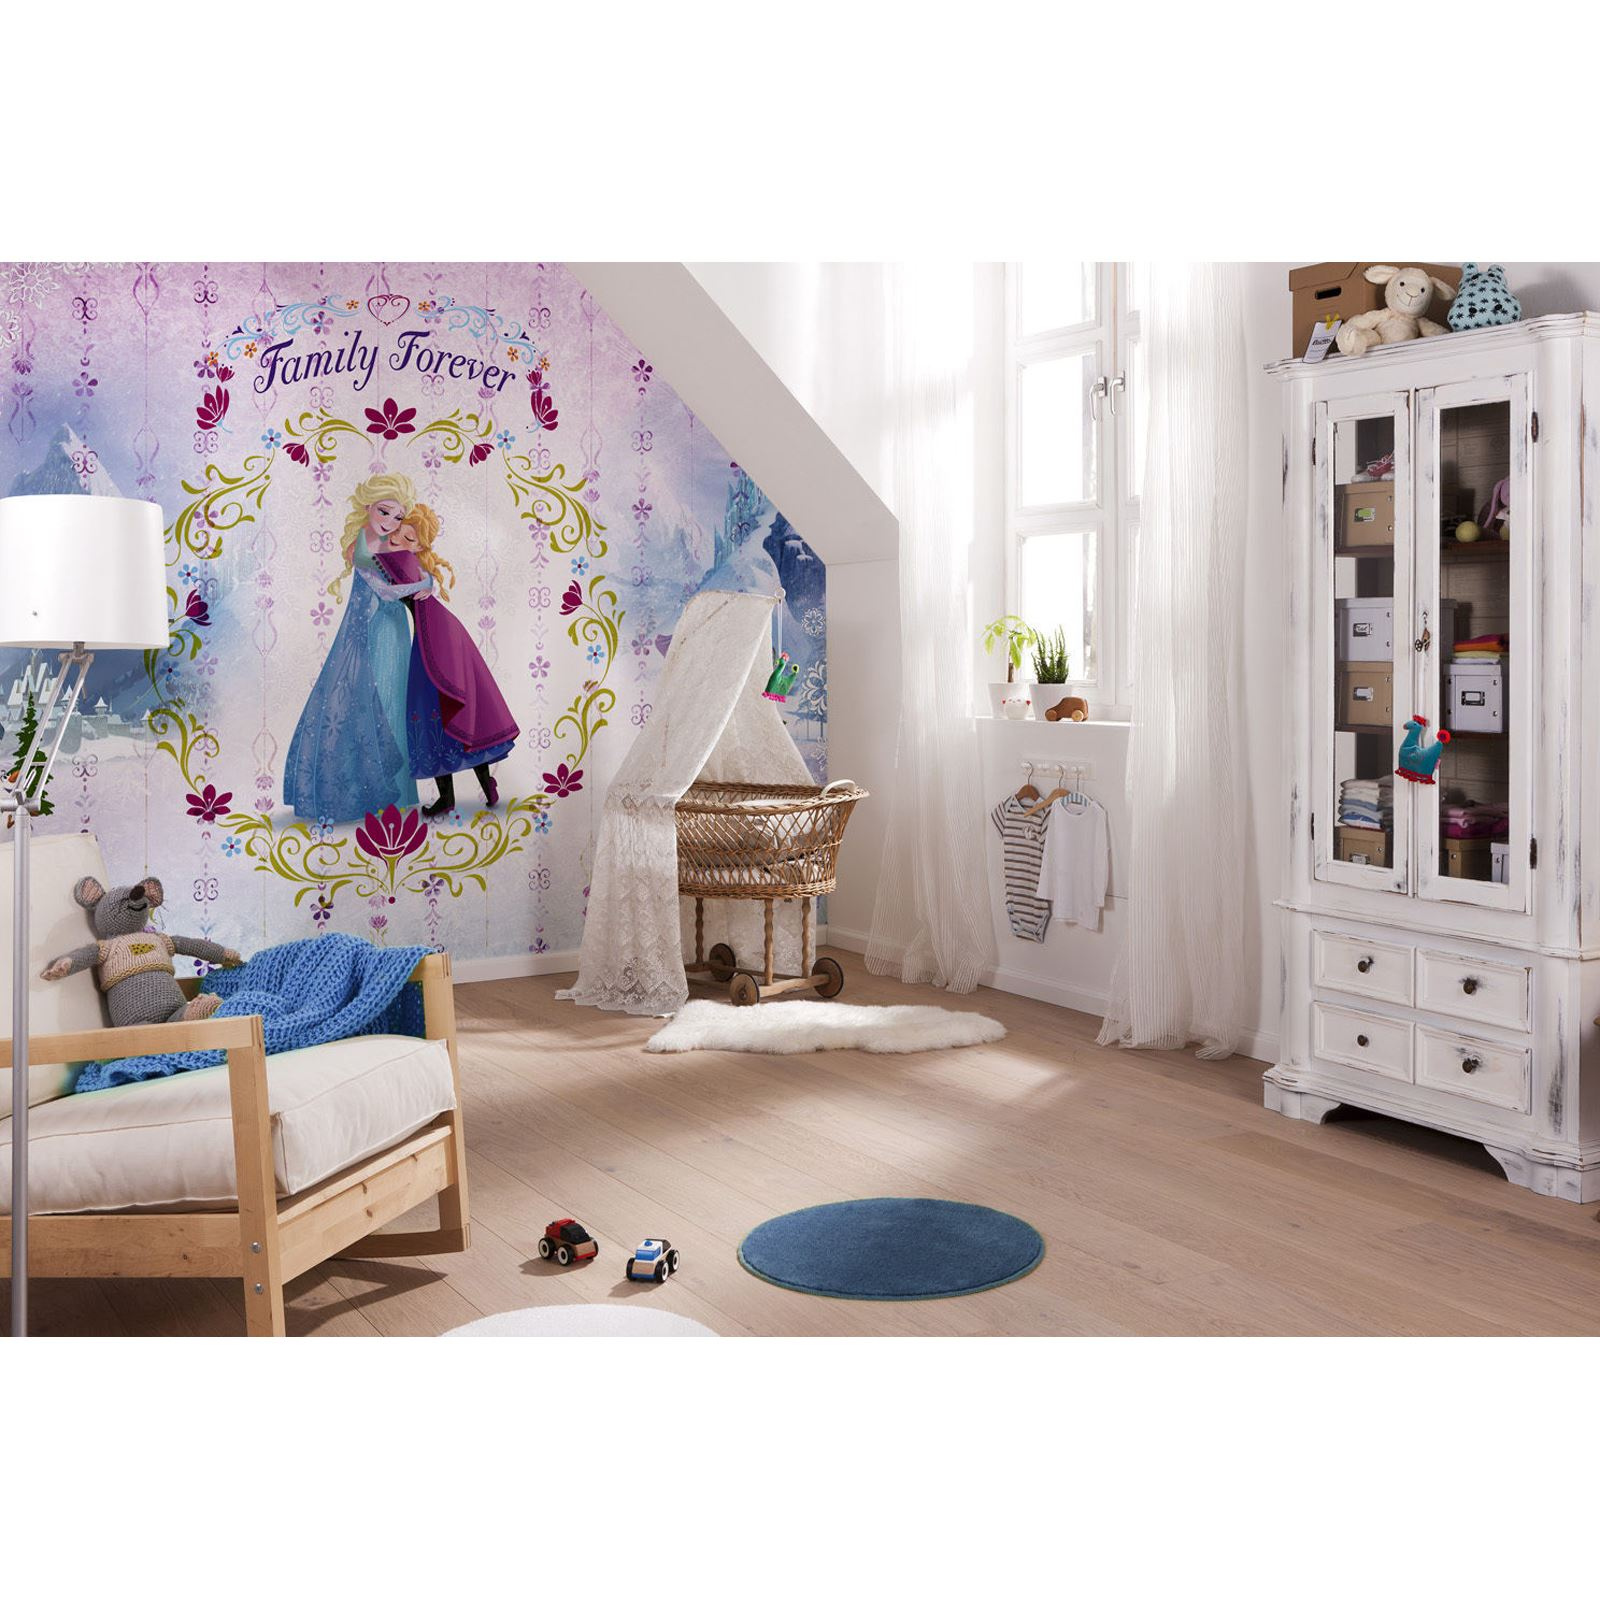 Disney princess eisk nigin tapete wandmalerei anna - Kinderzimmer eiskonigin ...